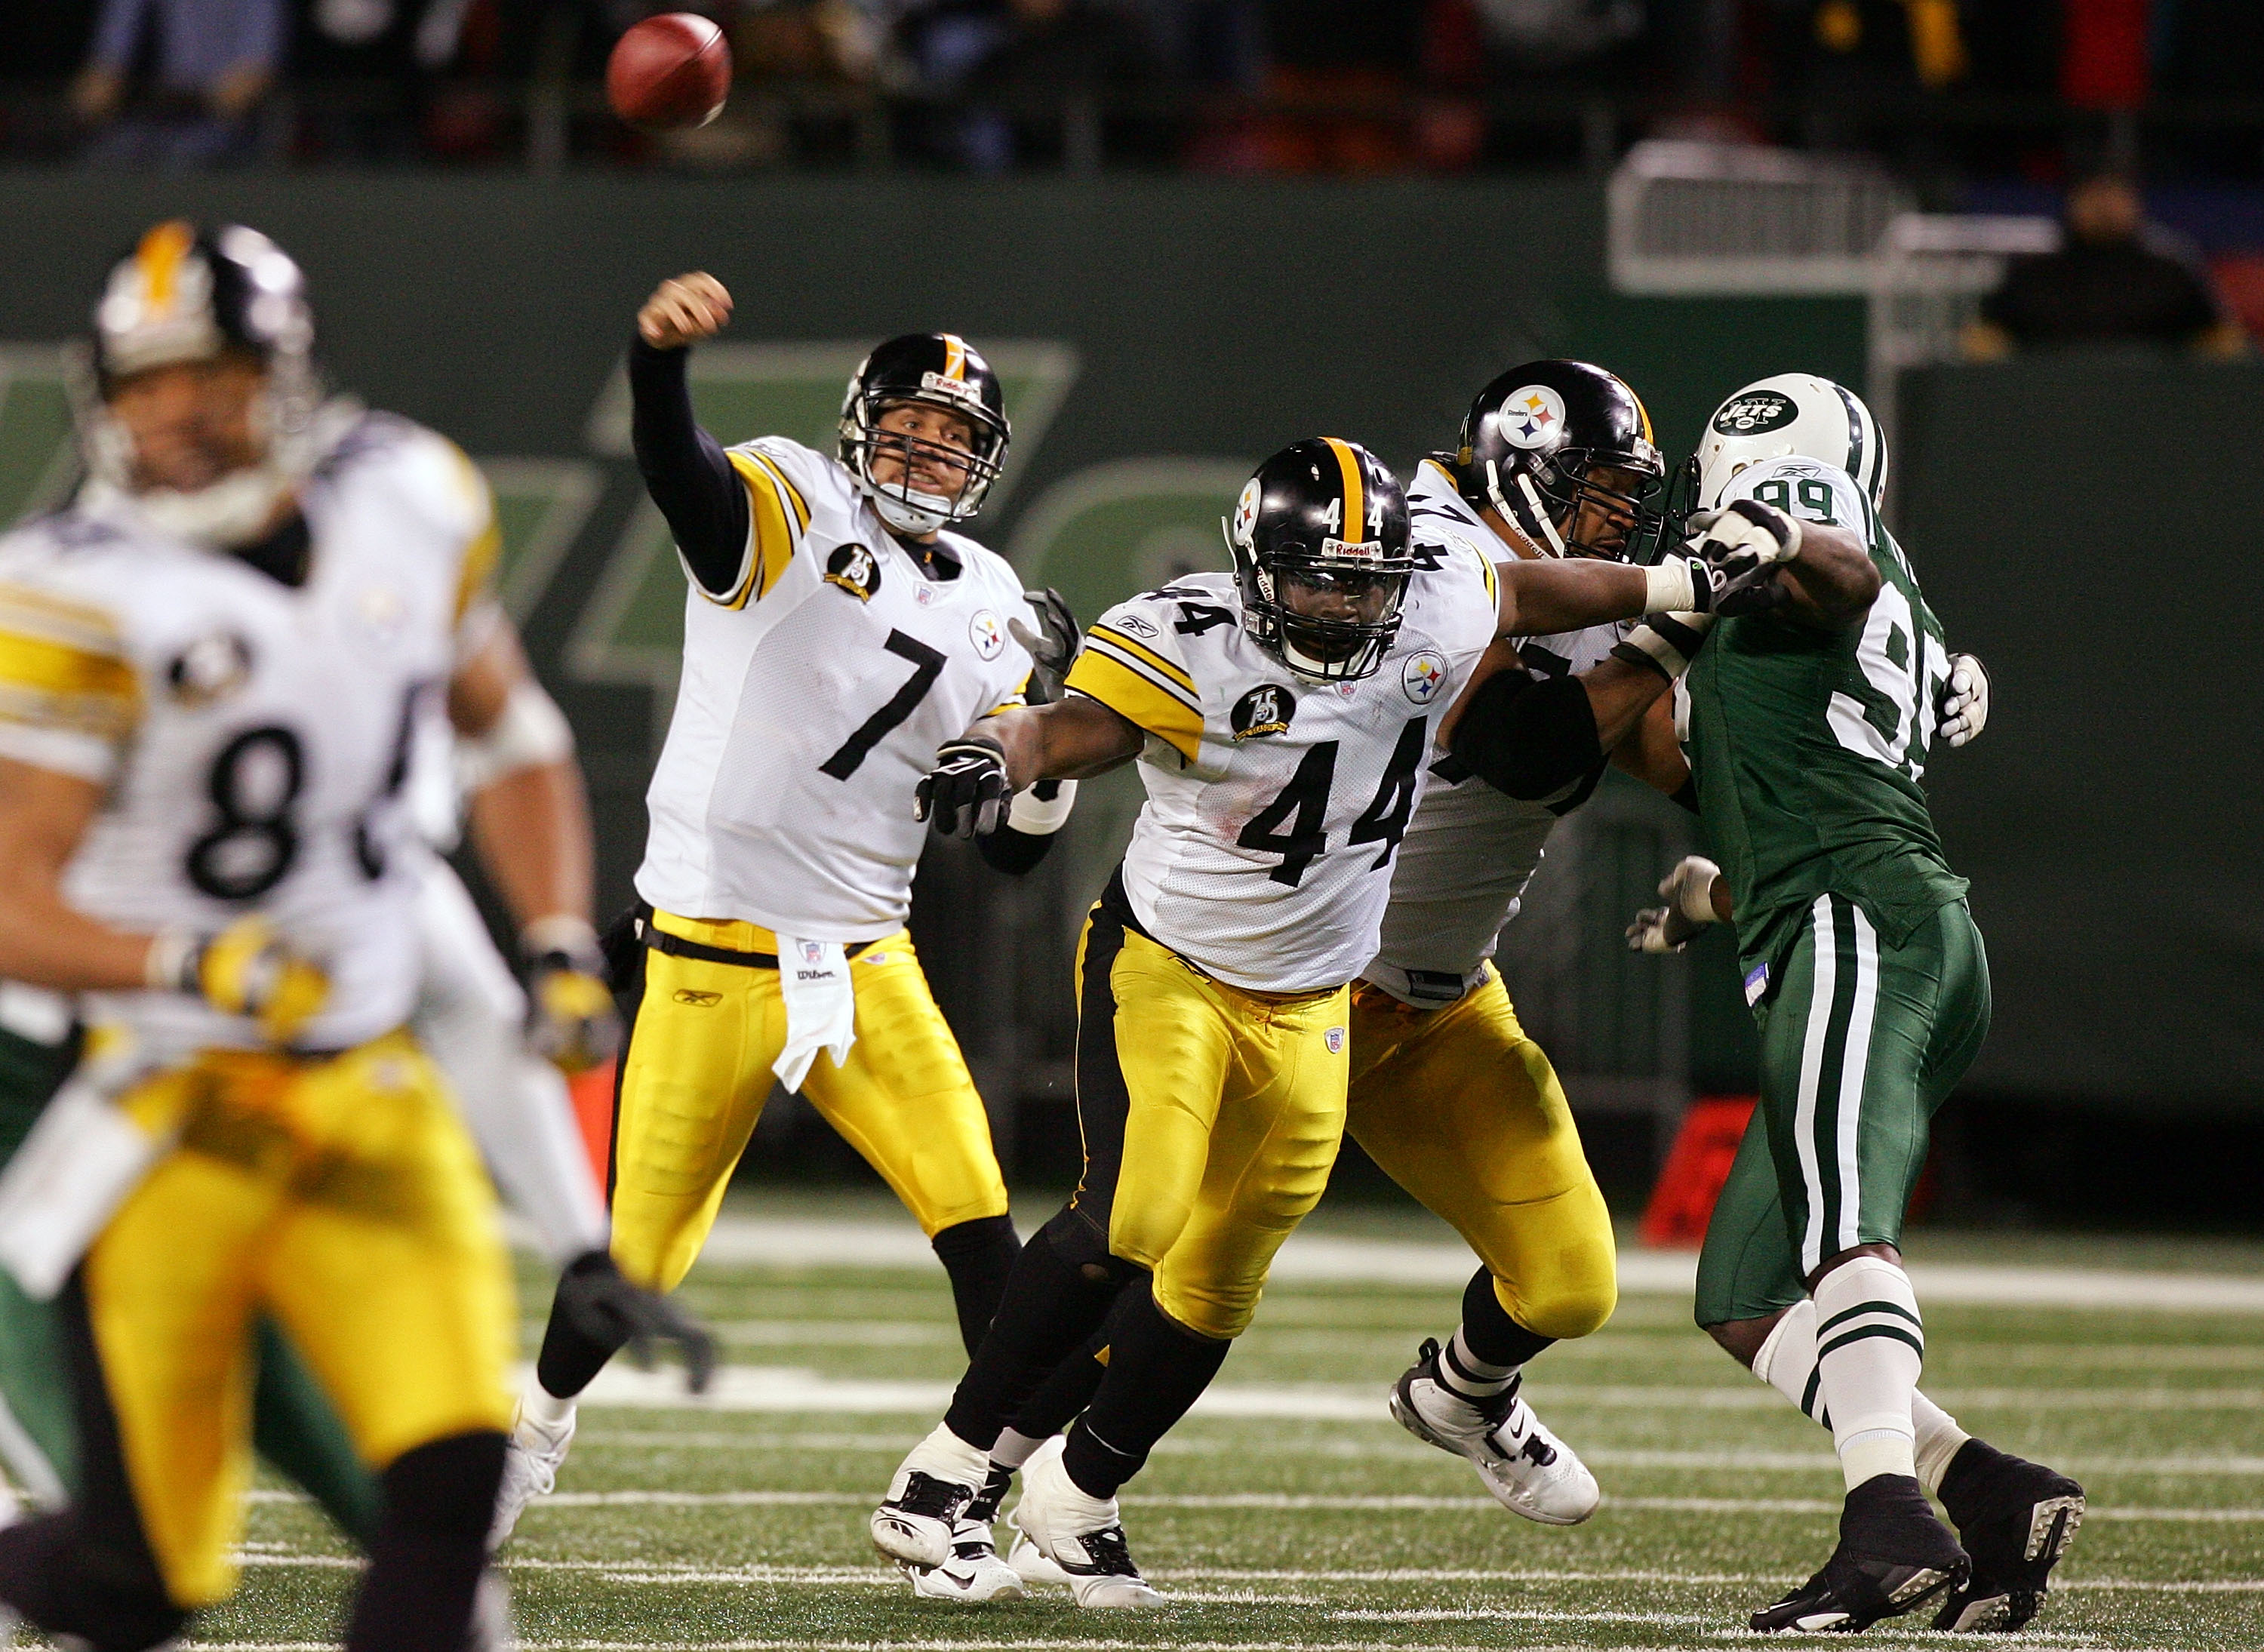 EAST RUTHERFORD, NJ - NOVEMBER 18:  Ben Roethlisberger #7 of the Pittsburgh Steelers throws a pass against the New York Jets at Giants Stadium November 18, 2007 in East Rutherford, New Jersey.  (Photo by Jim McIsaac/Getty Images)